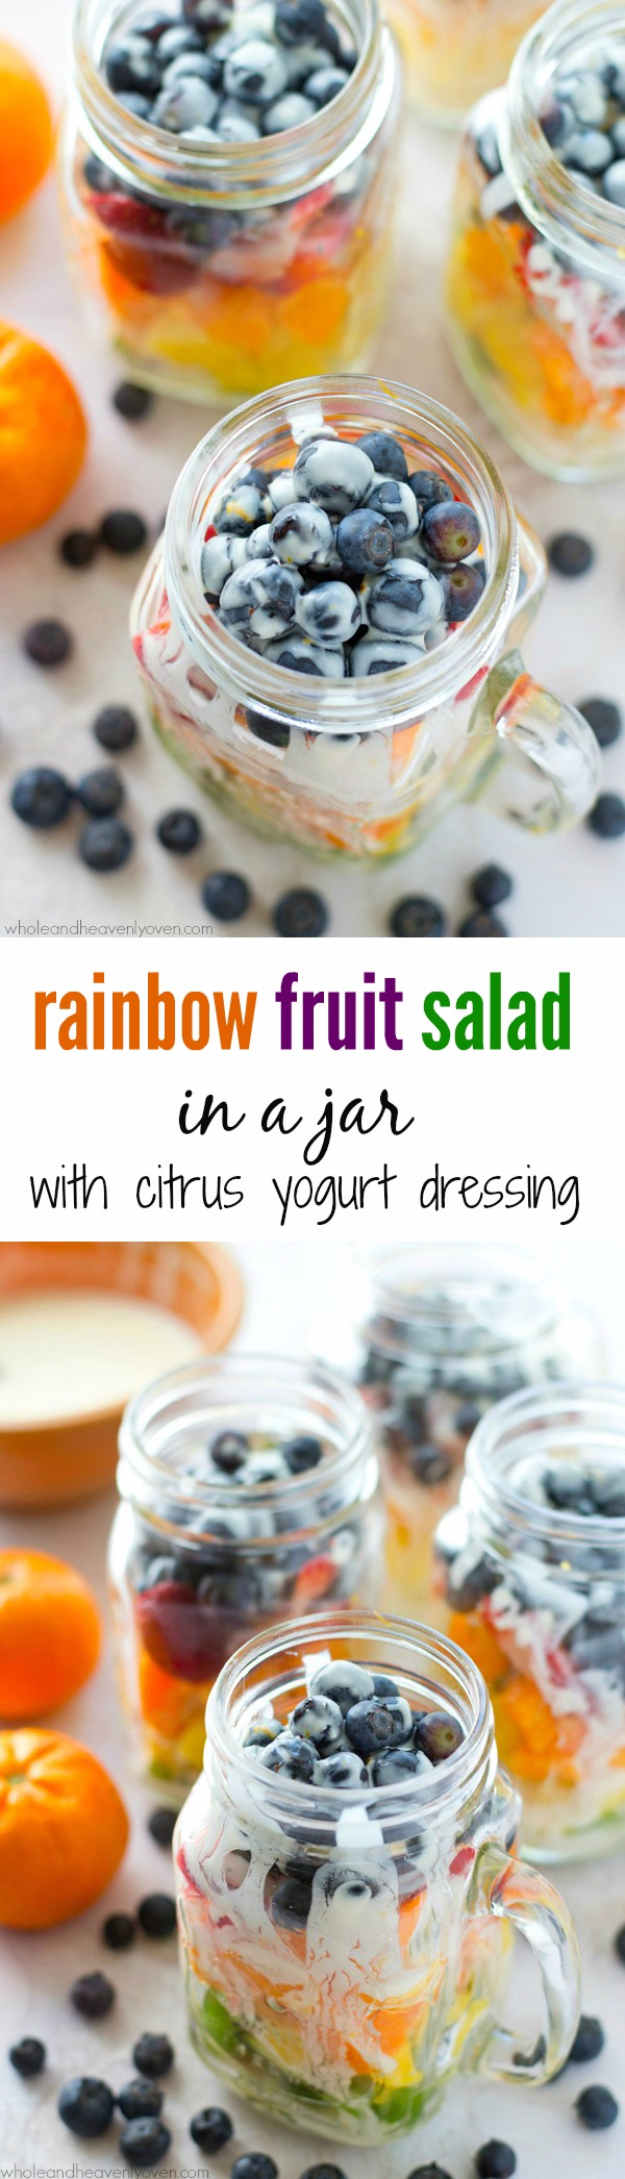 Best Recipes in A Jar - Rainbow Fruit Salad - DIY Mason Jar Gifts, Cookie Recipes and Desserts, Canning Ideas, Overnight Oatmeal, How To Make Mason Jar Salad, Healthy Recipes and Printable Labels